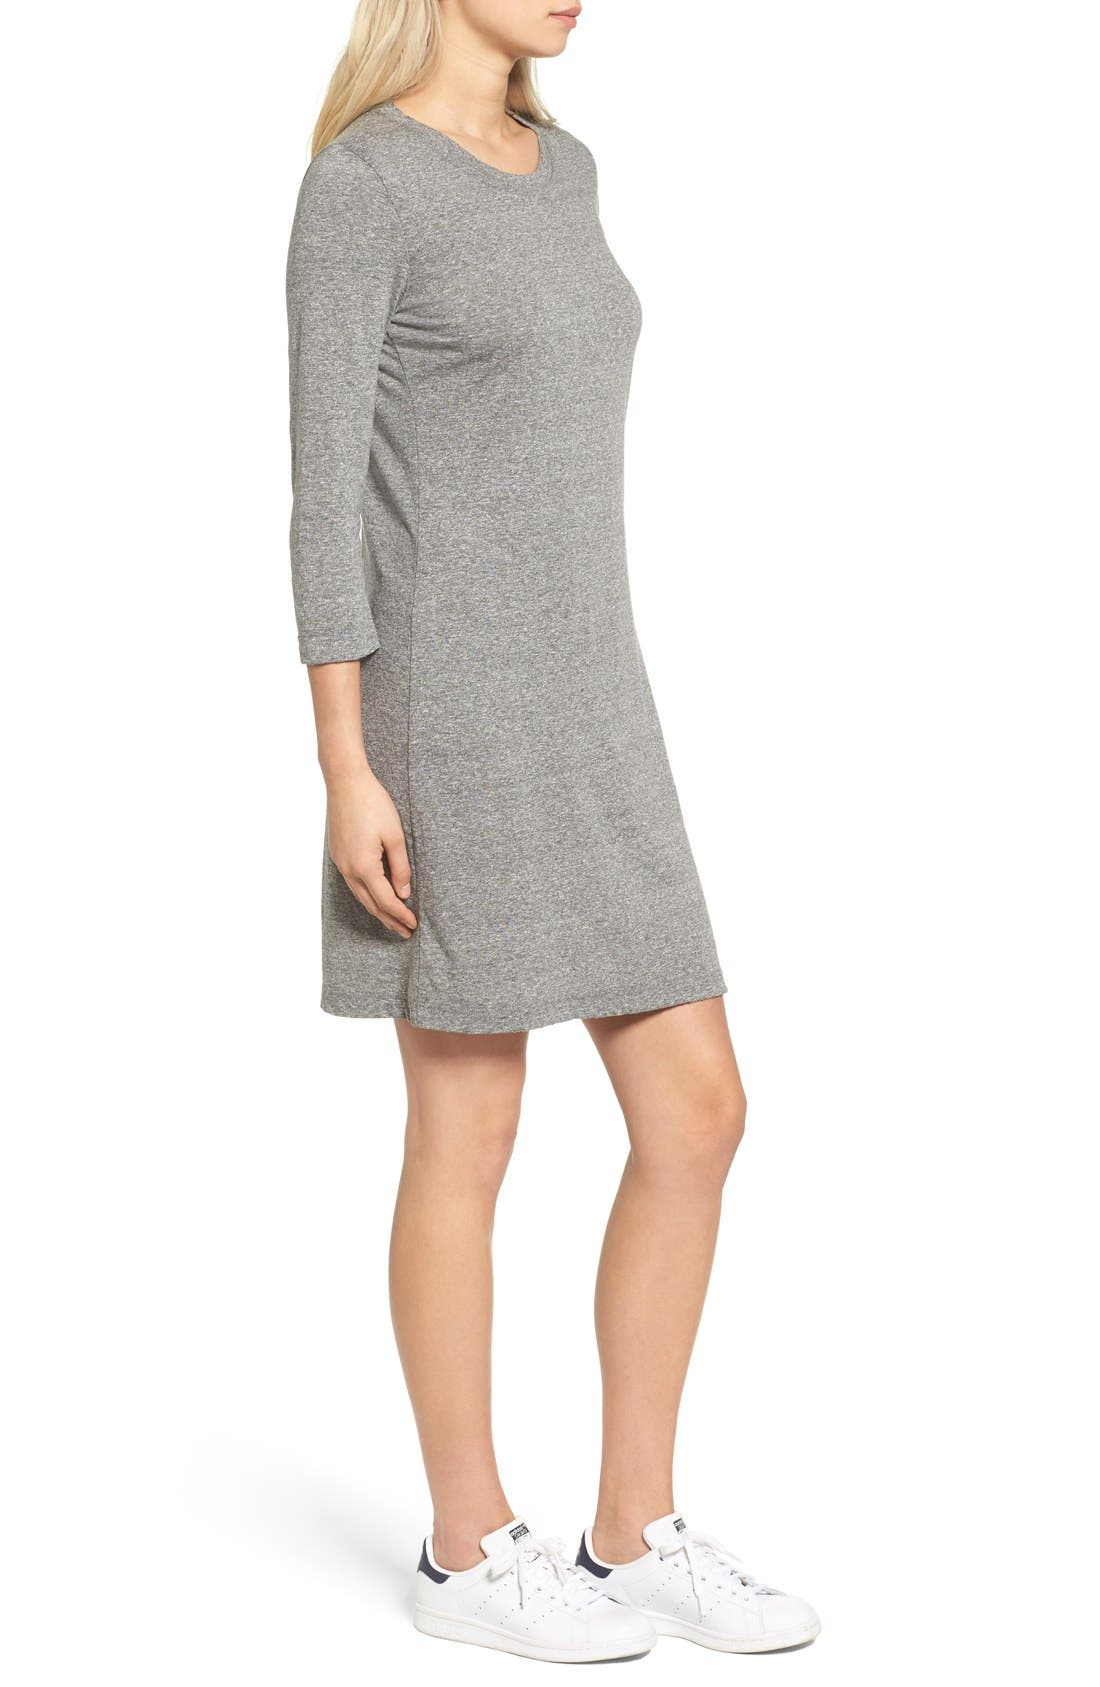 T-Shirt Dress,                             Alternate thumbnail 3, color,                             Heather Grey